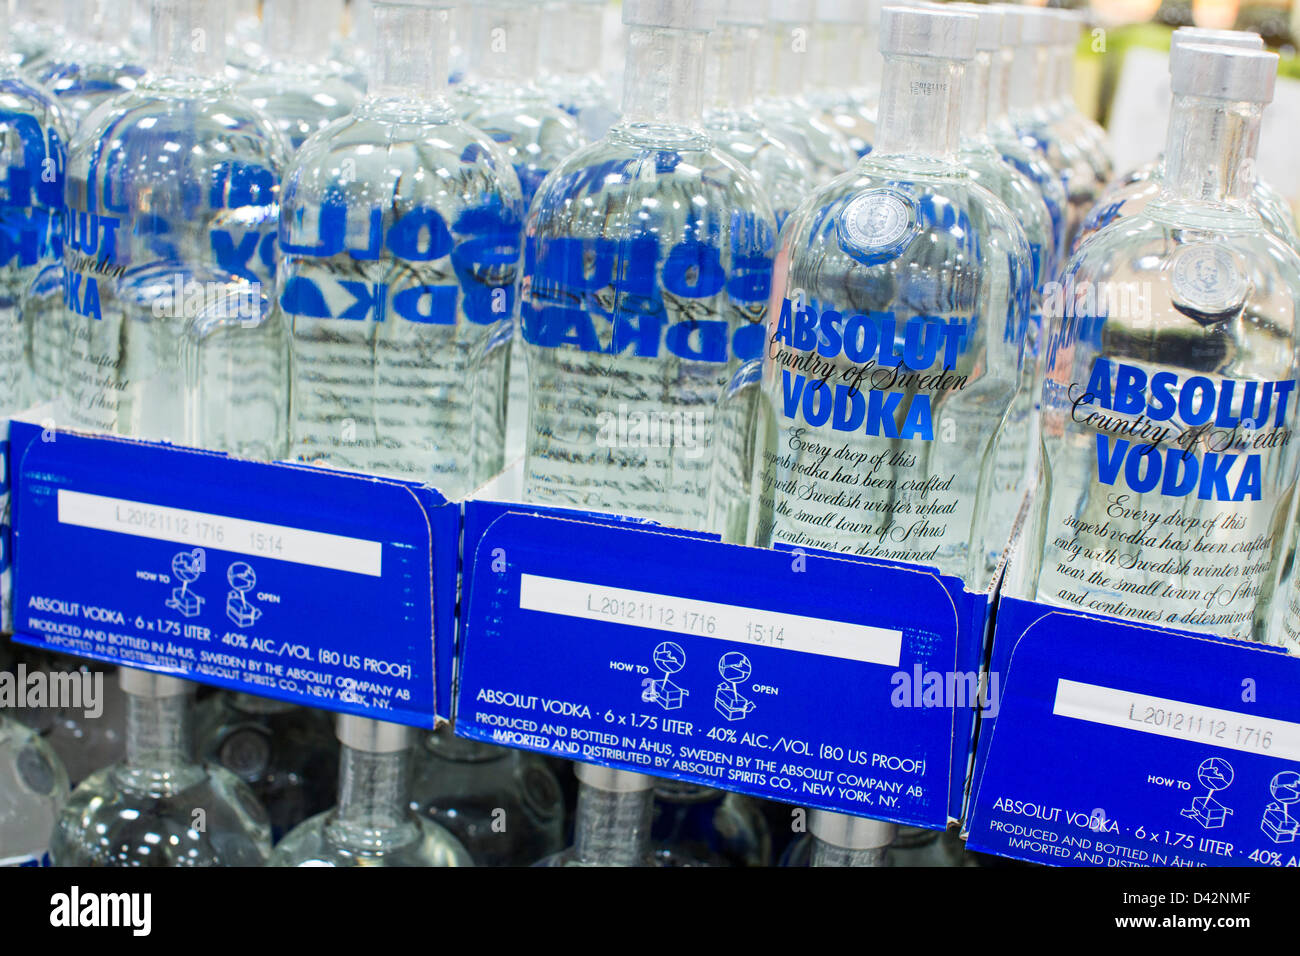 Absolut vodka on display at a costco wholesale warehouse club stock absolut vodka on display at a costco wholesale warehouse club stock photo 54150671 alamy thecheapjerseys Images